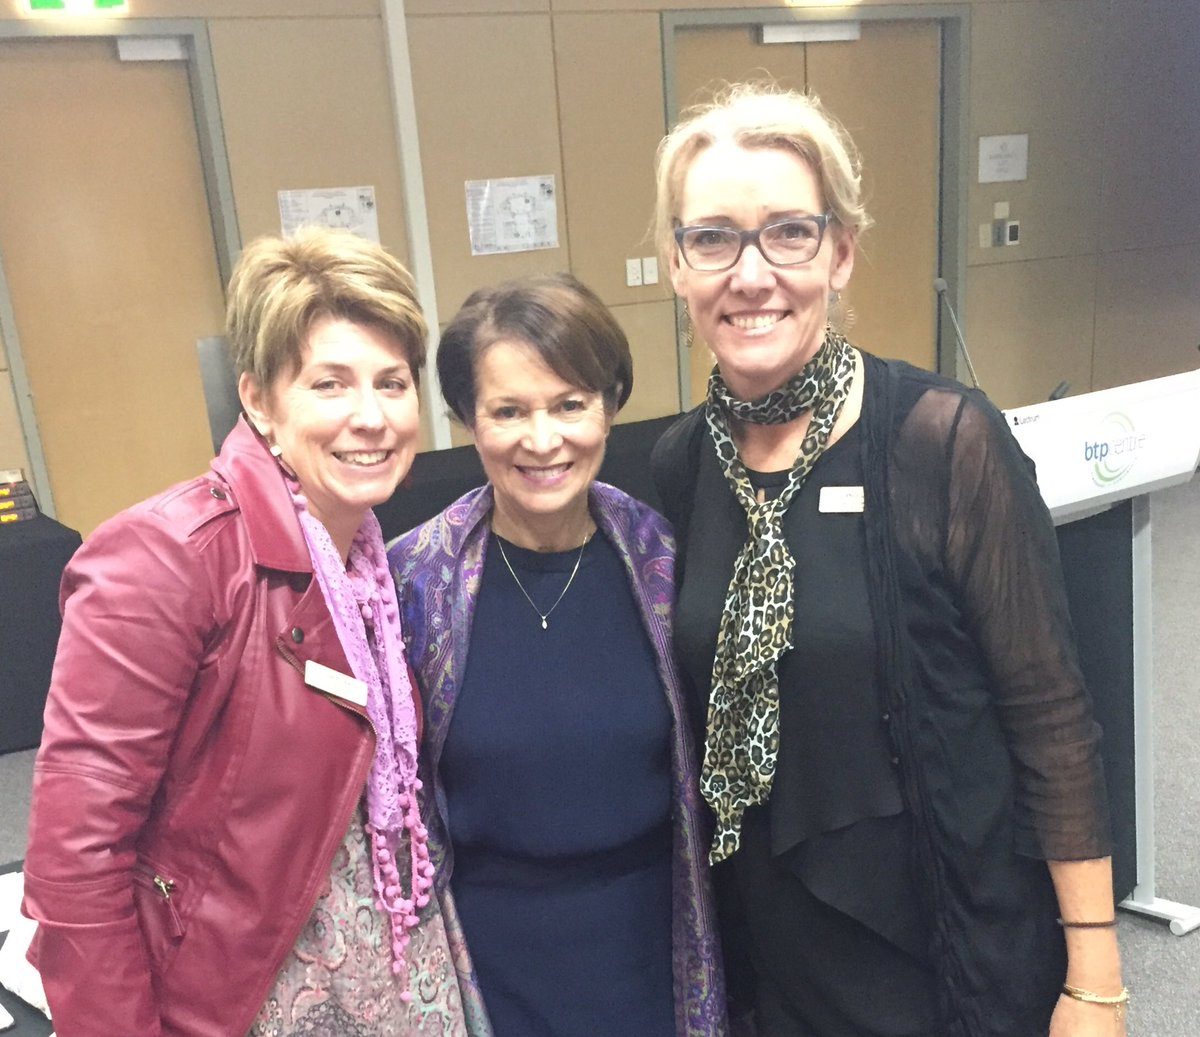 """Janice Lenarduzzi on Twitter: """"Great day with over 50 Metro schools working  with Lyn Sharratt - Putting Faces on the Data Through Precision in Quality  ..."""